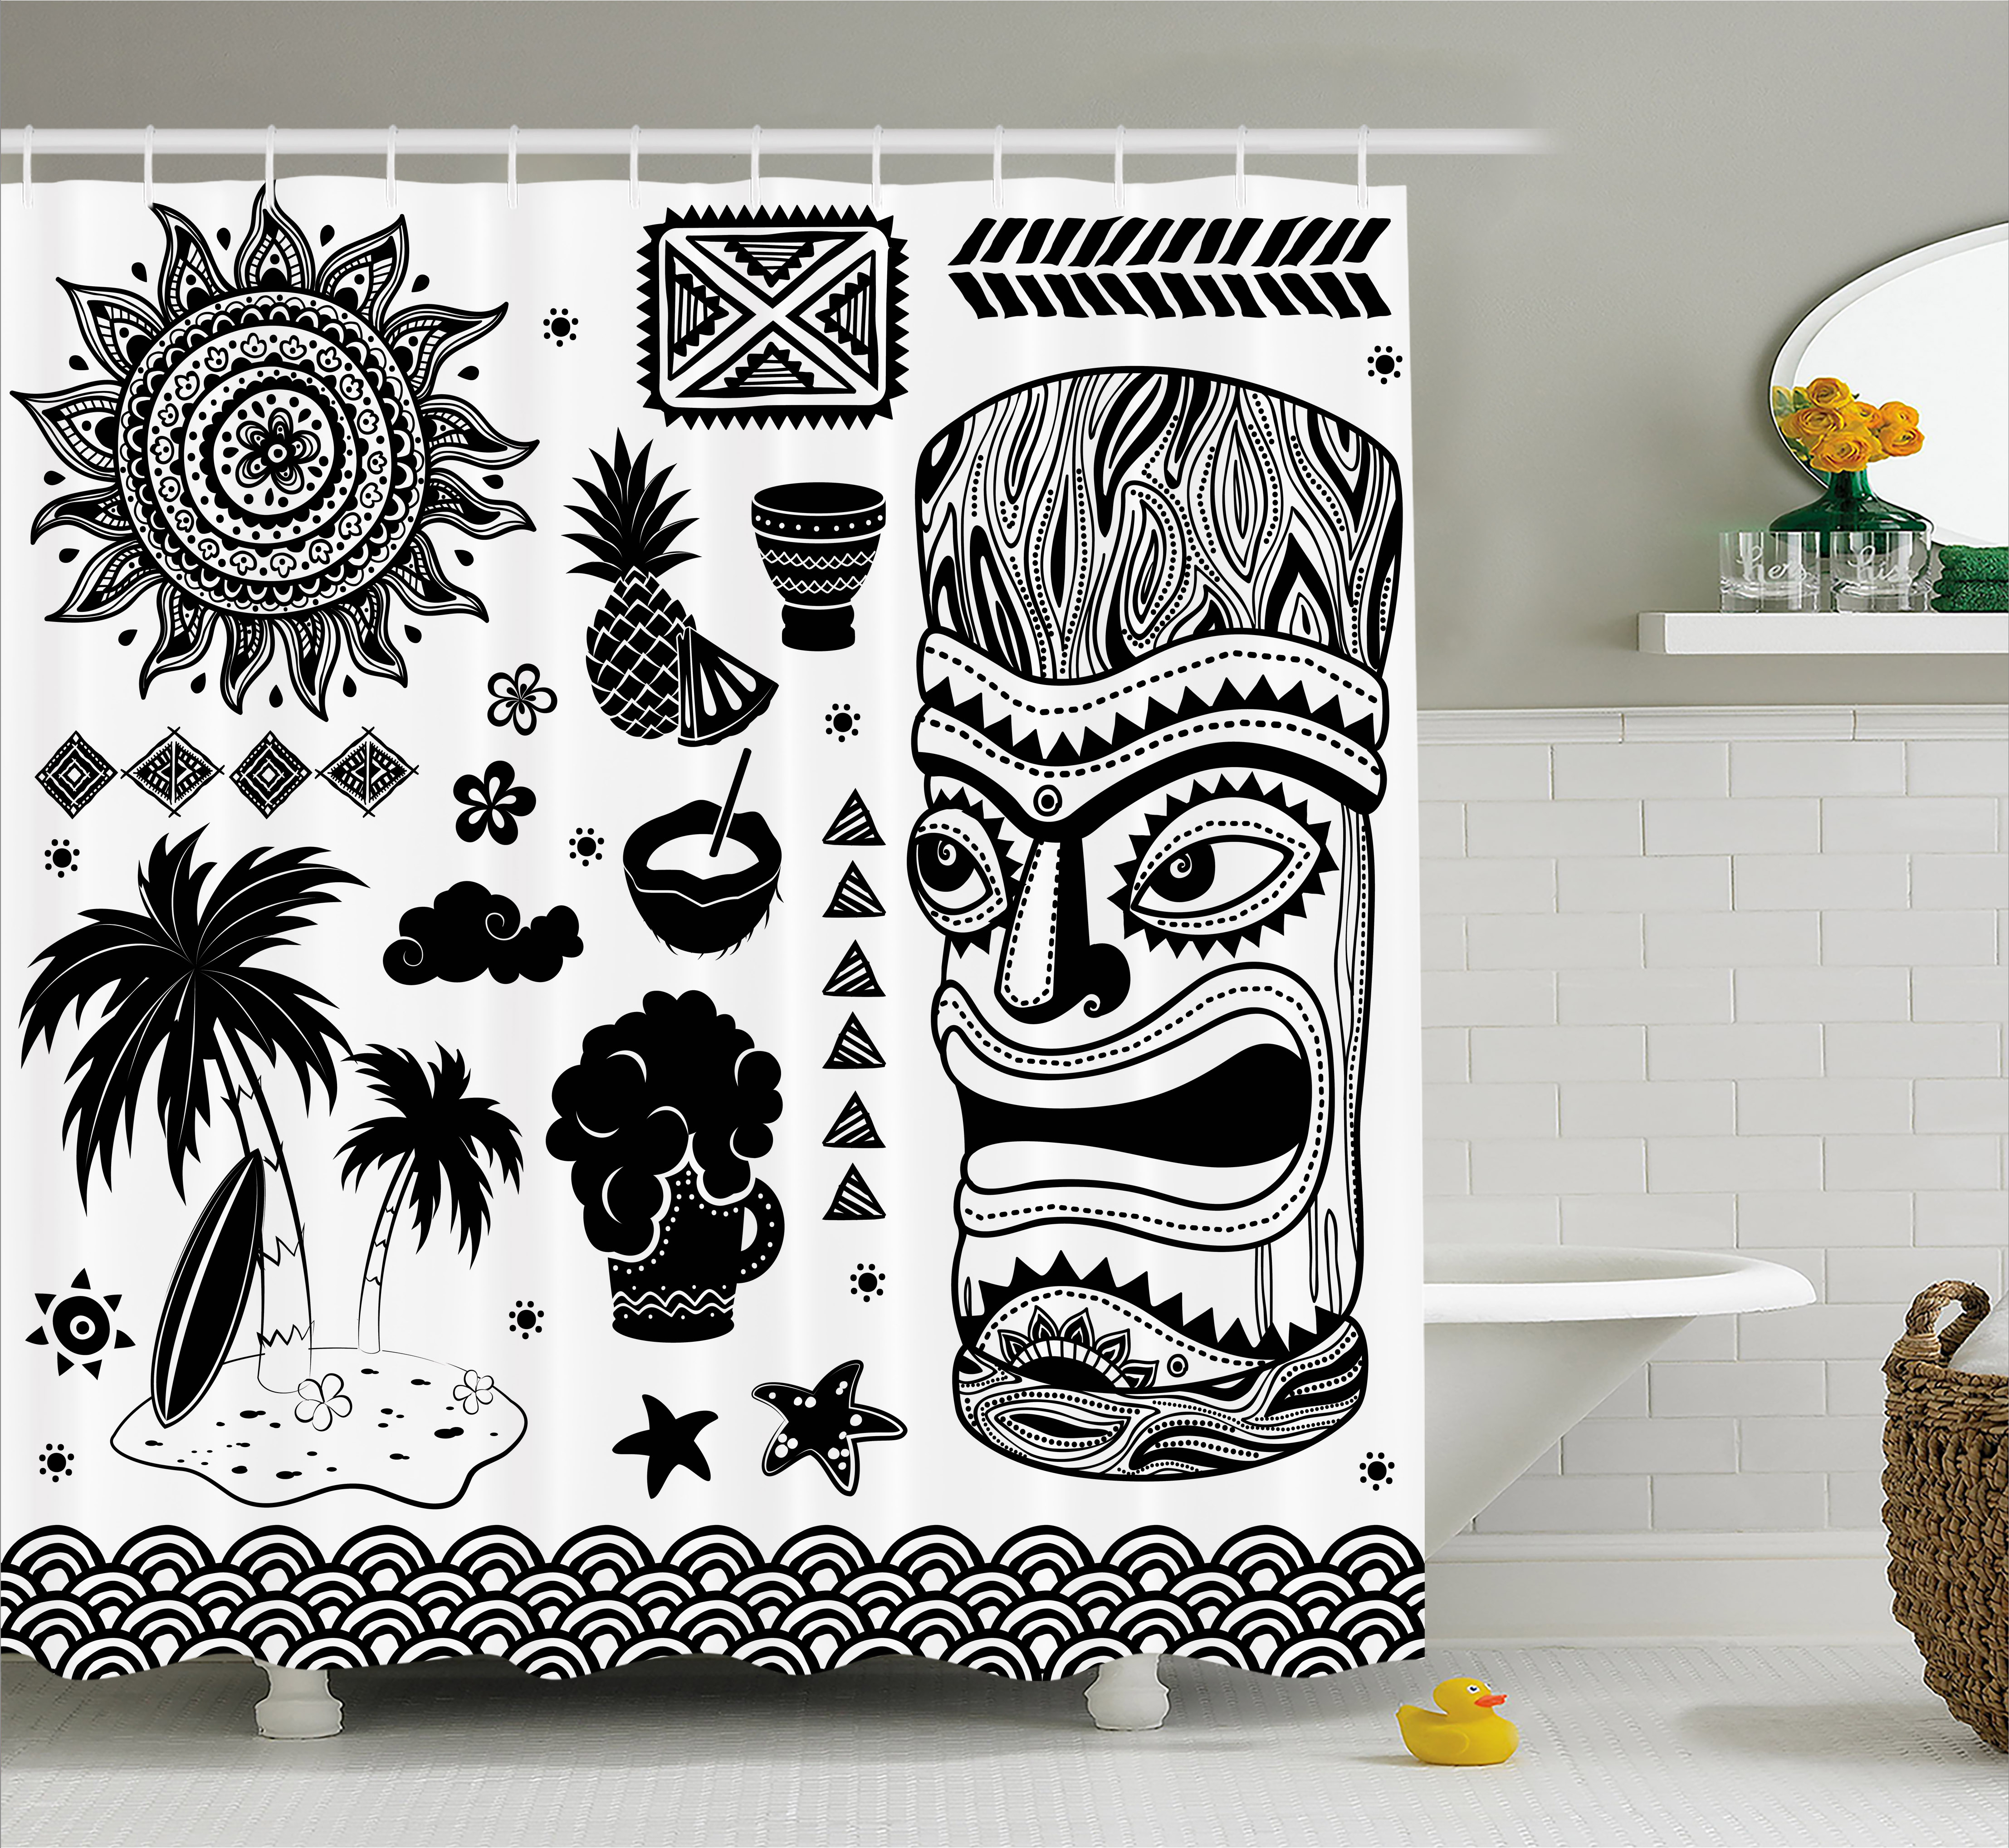 Tiki Bar Decor Shower Curtain, Tribal Ethnic Composition Palms Pineapple  Paradise Vintage Tiki Figure,